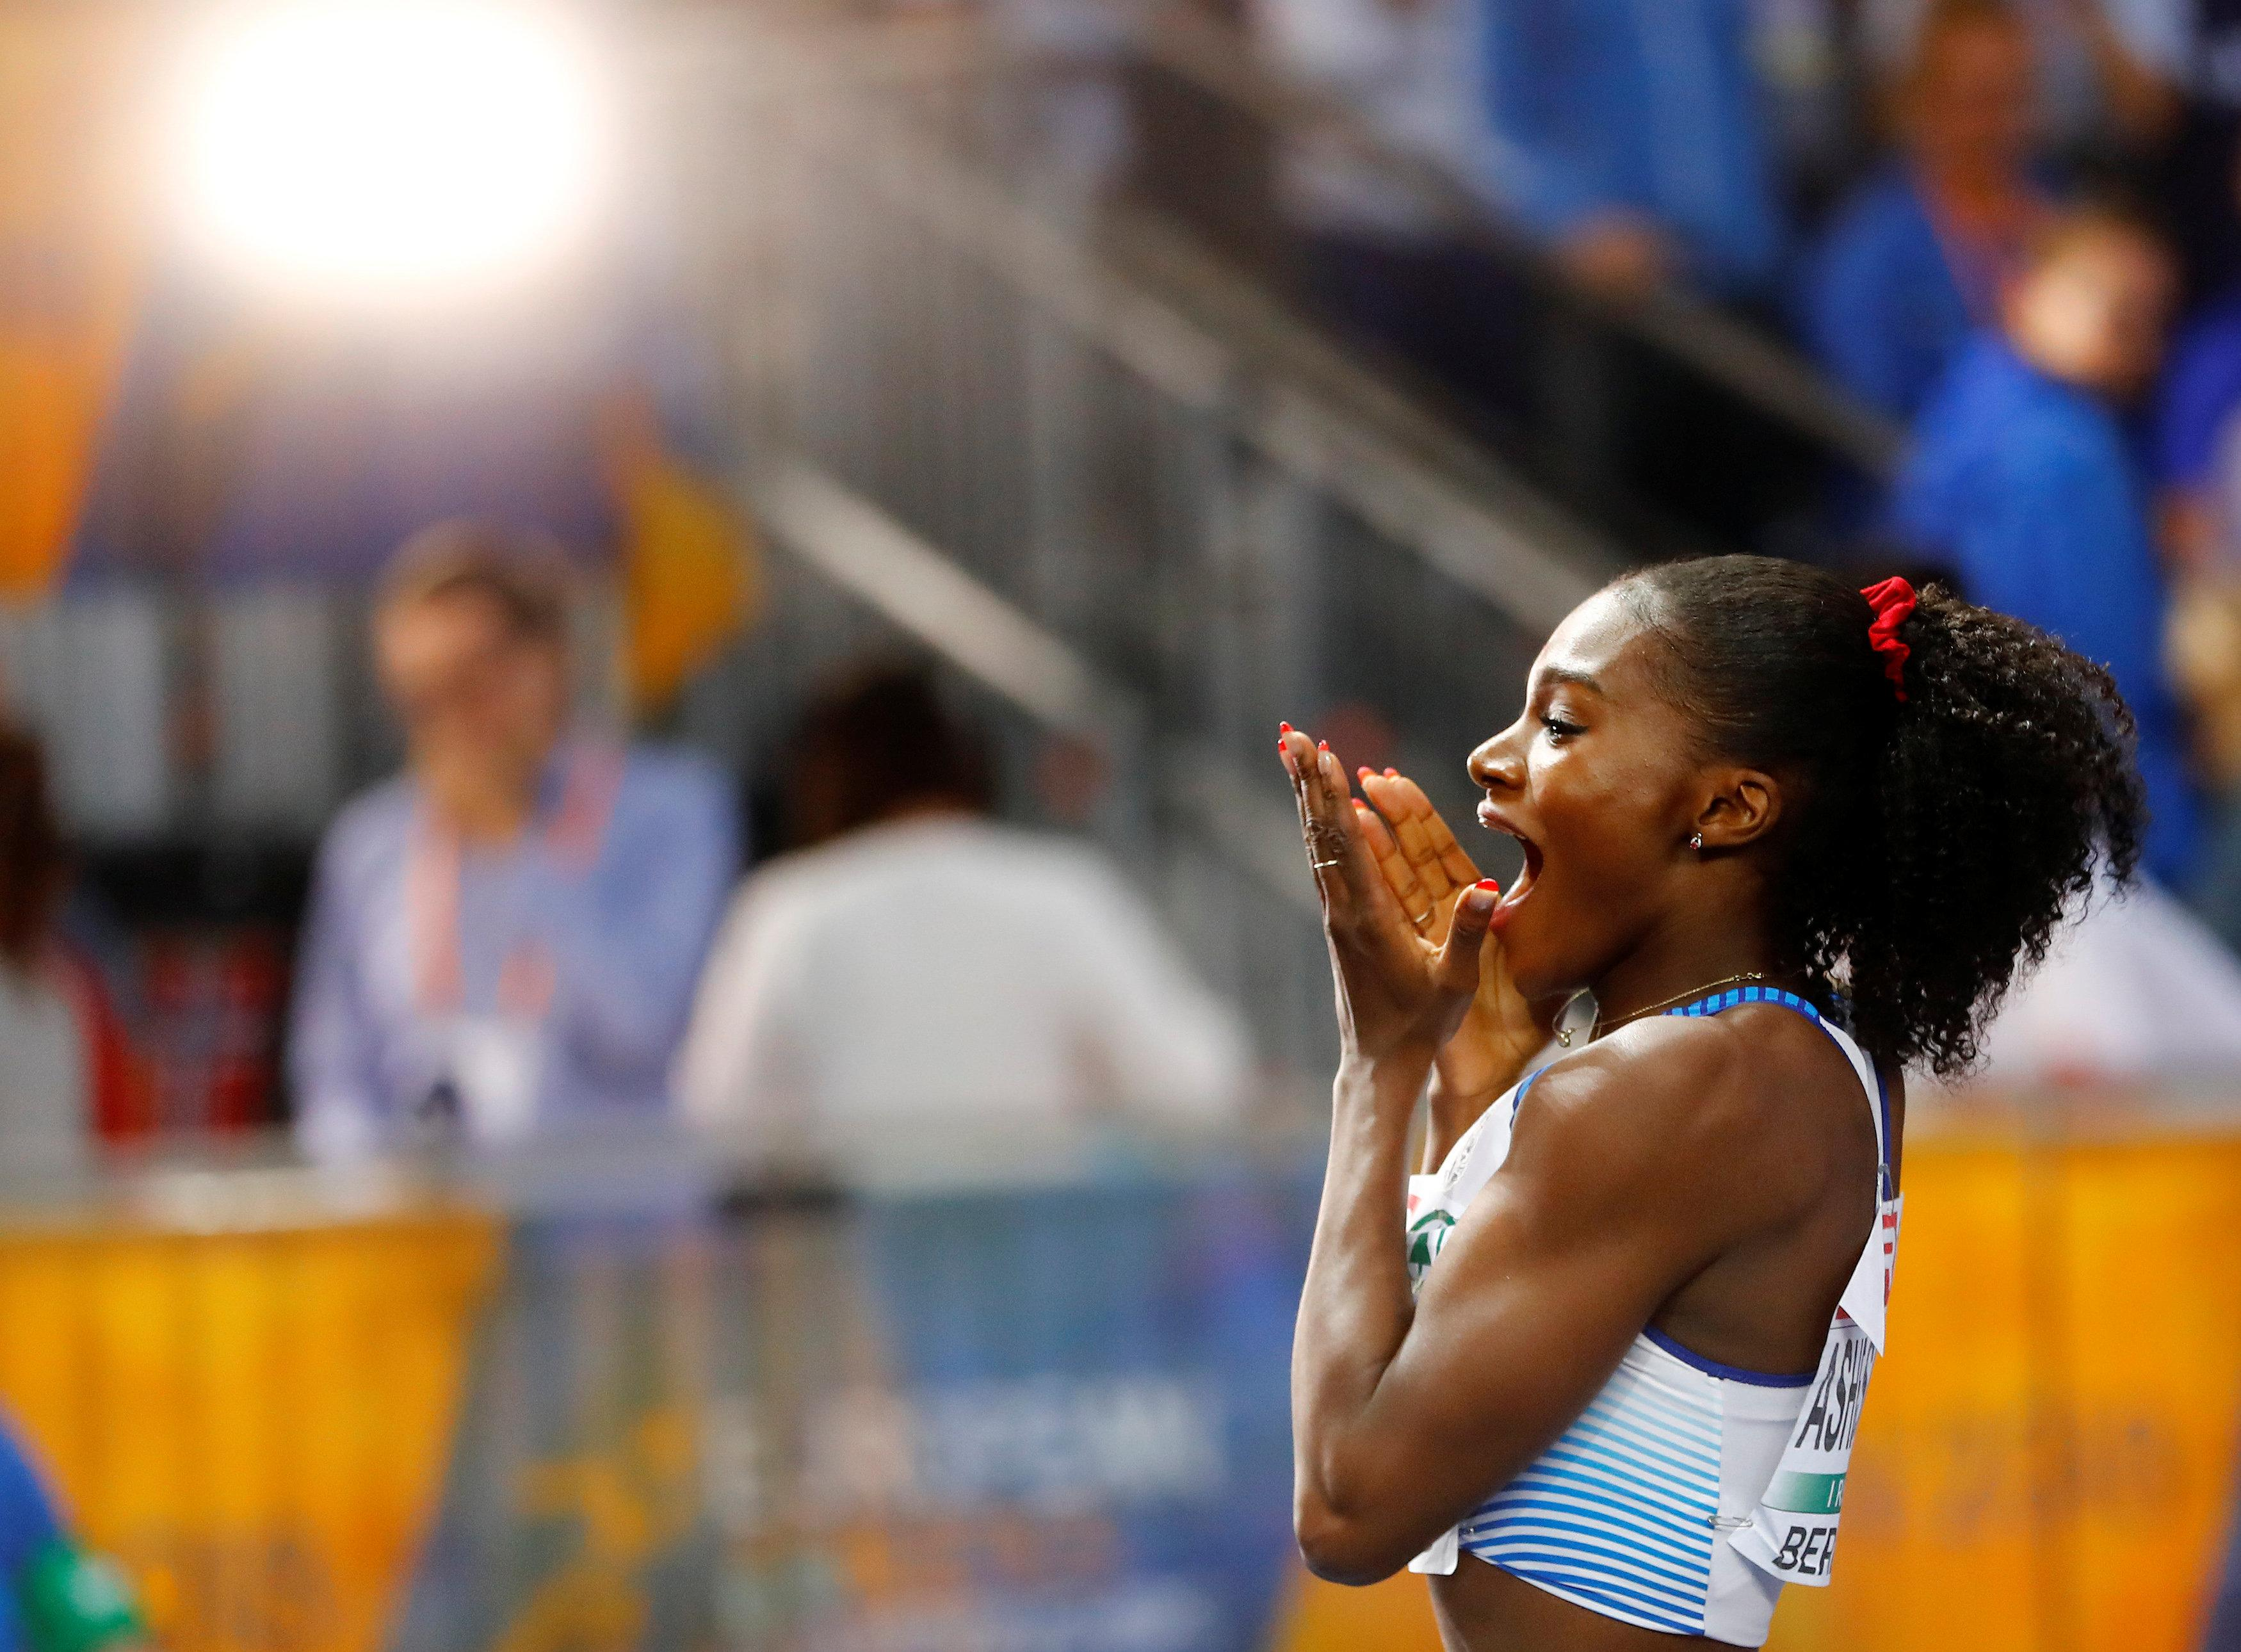 Dina Asher-Smith looked shocked as she completed a famous golden double